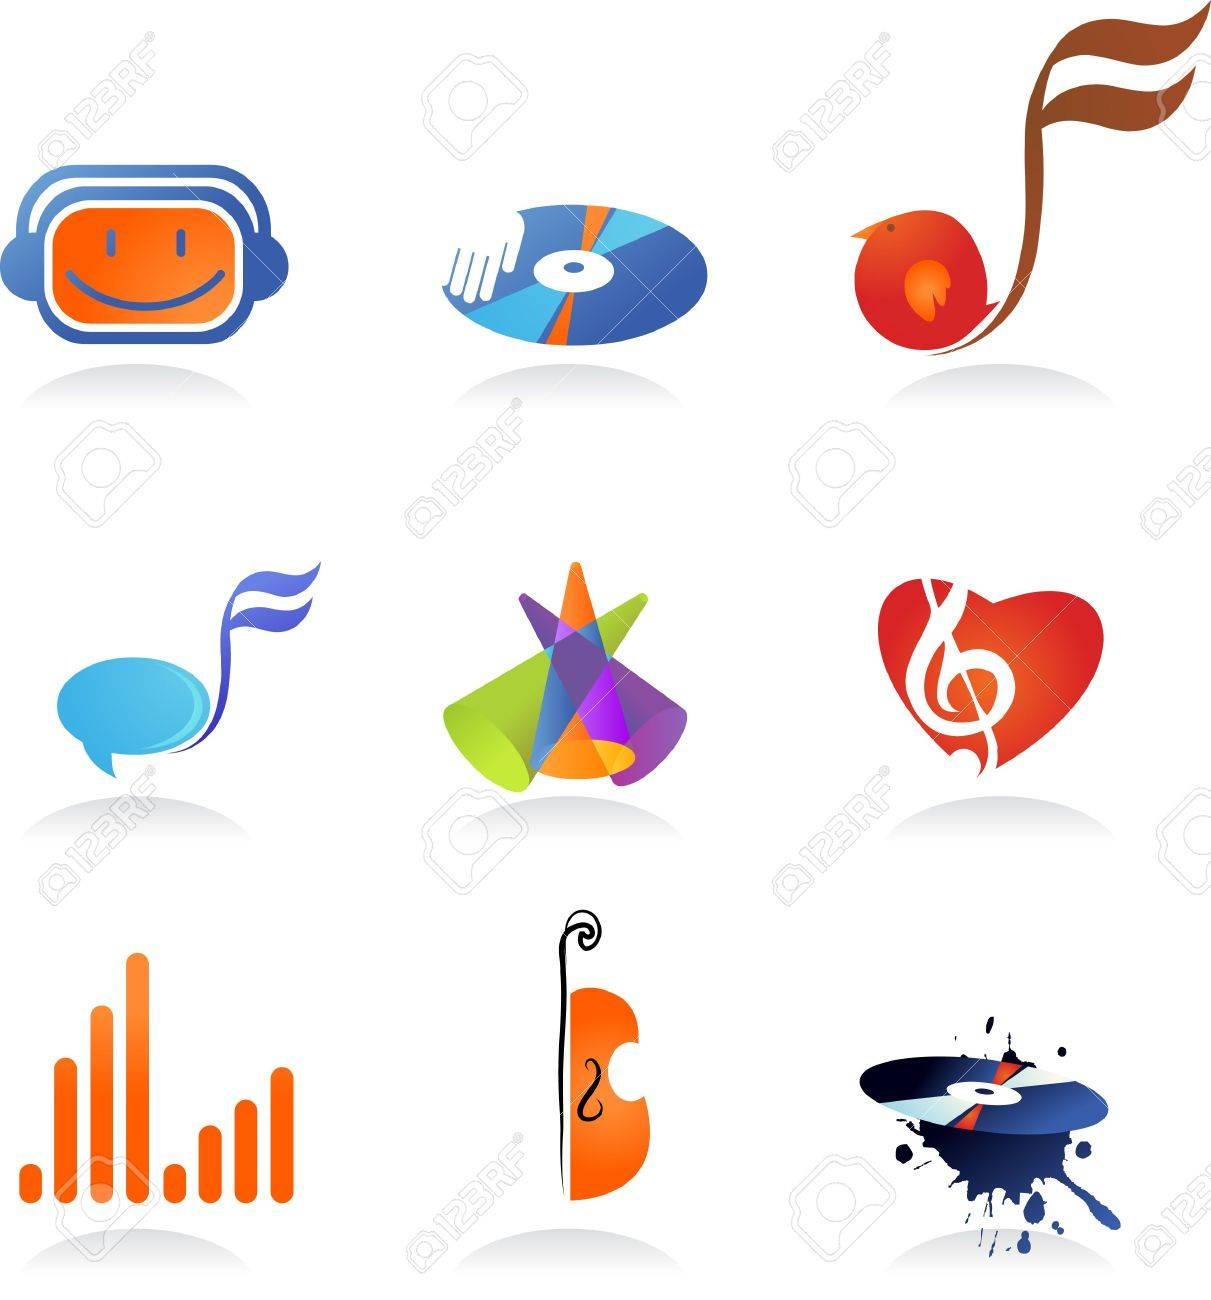 A set of music related icons and symbols Stock Photo - 6294299